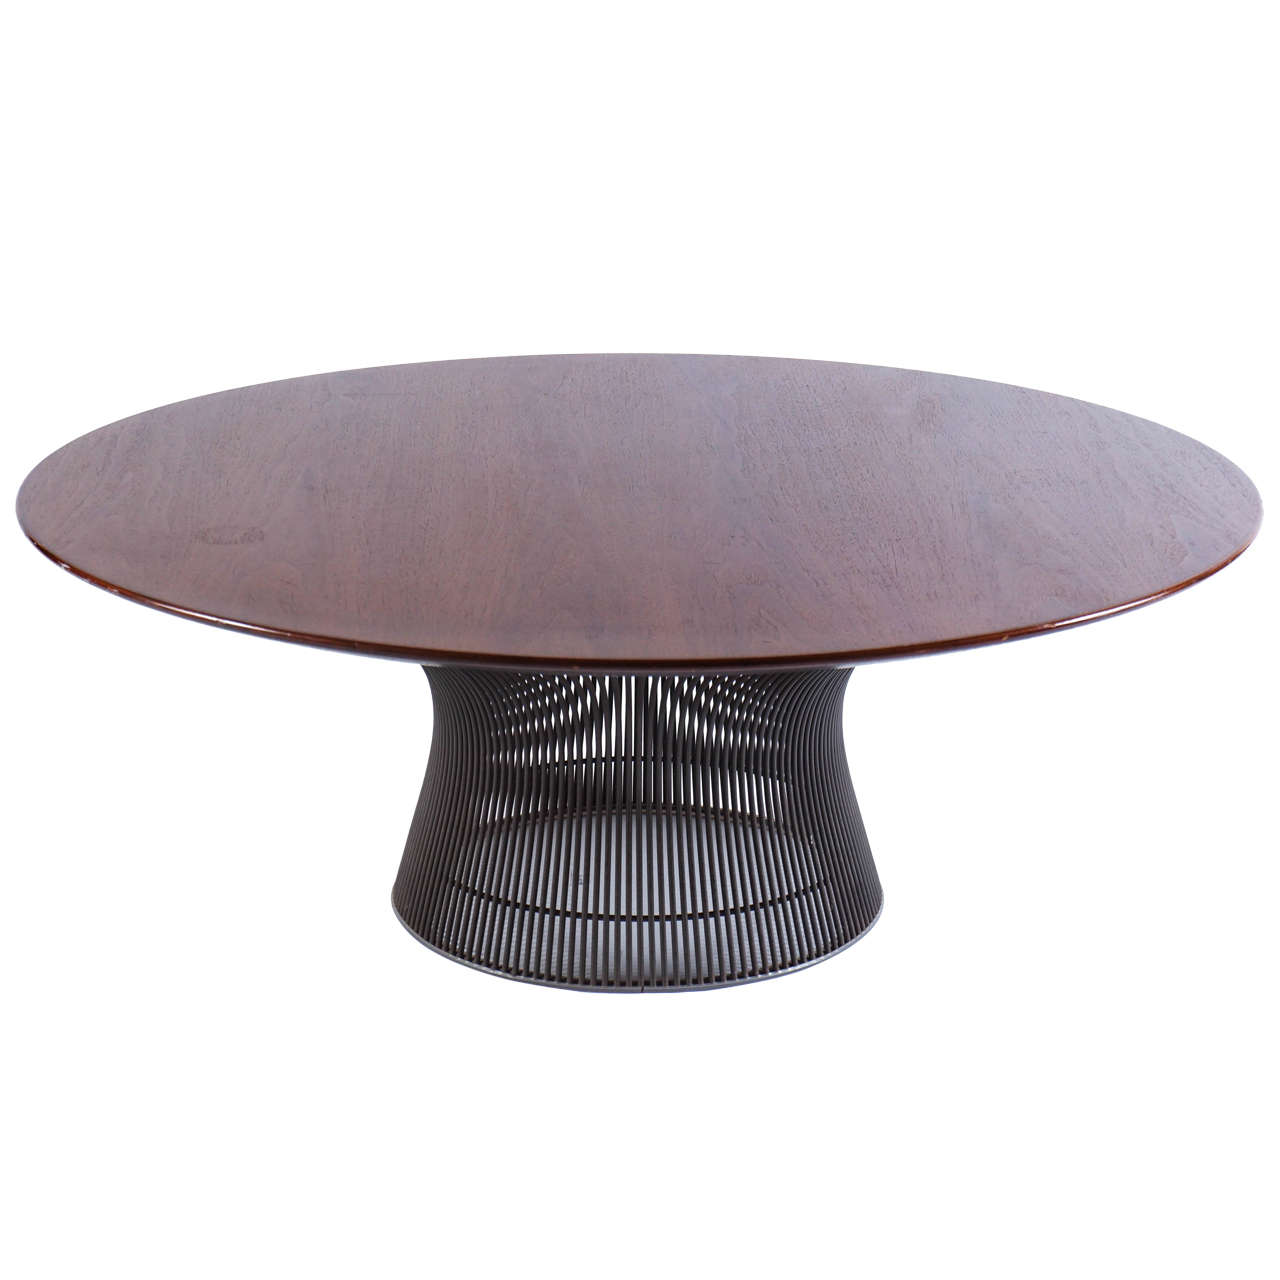 Walnut and bronze round coffee table by warren platner for for Warren platner coffee table